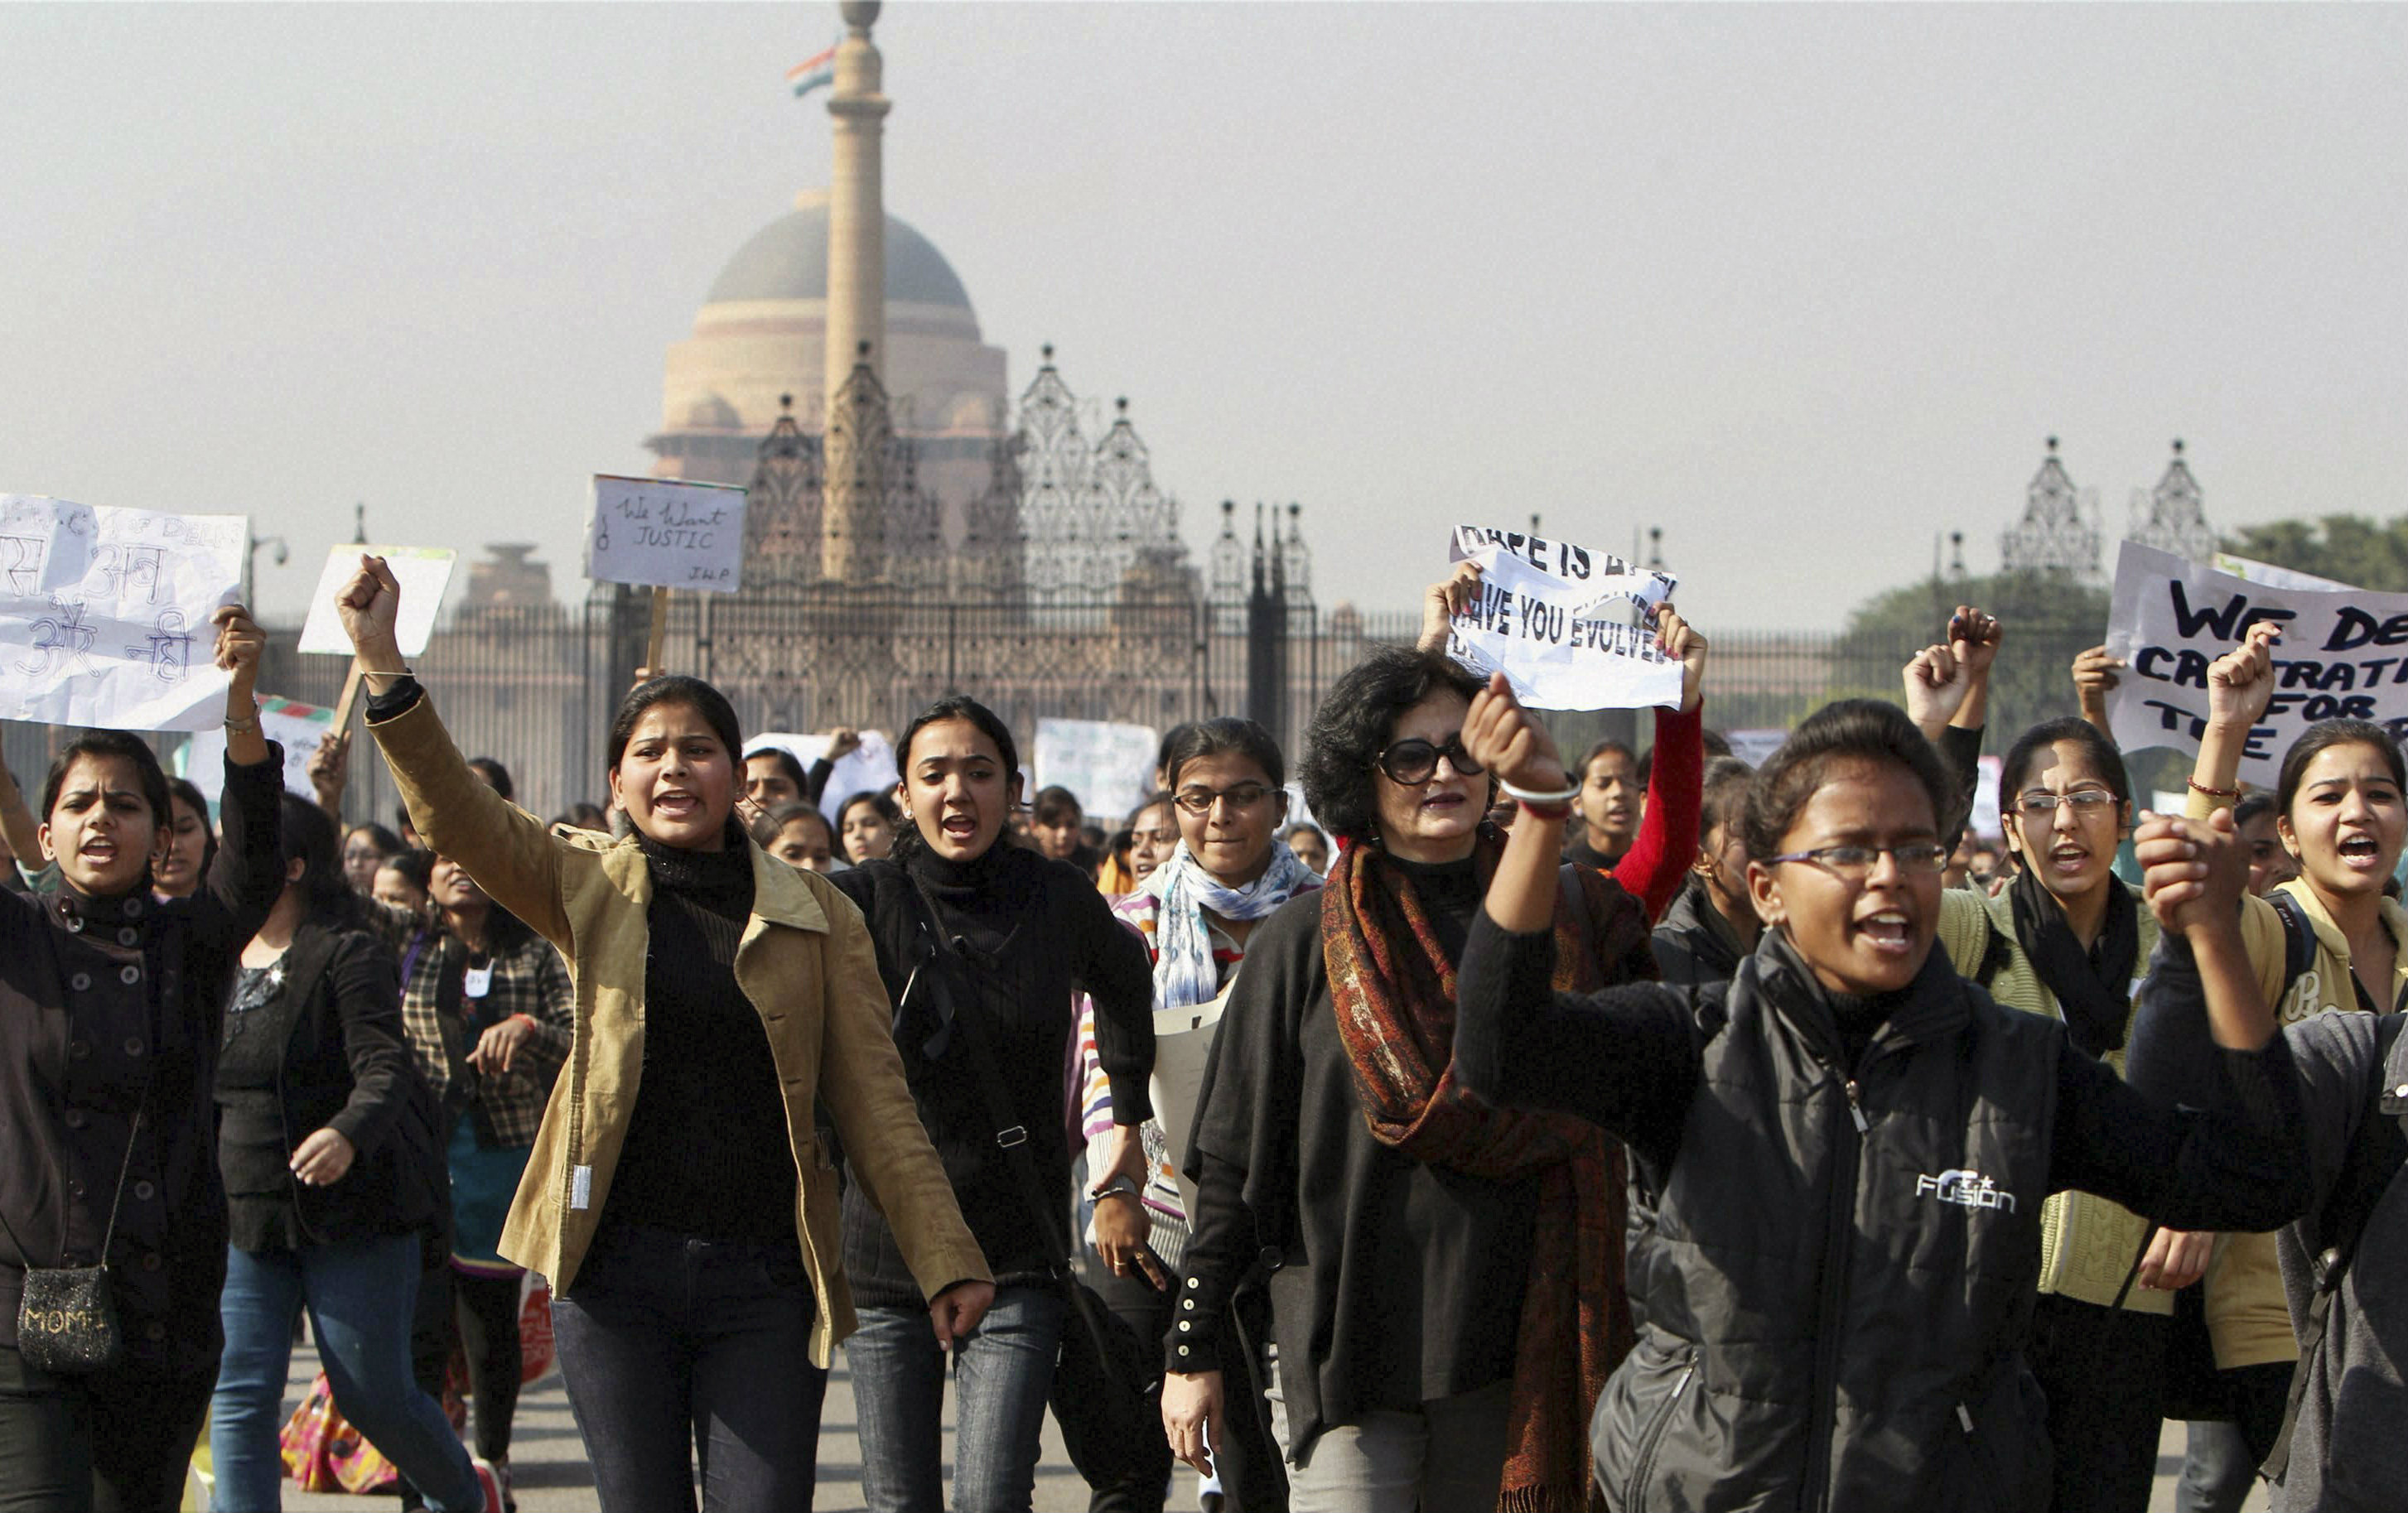 There have been protests every day in India's capital since a woman was gang-raped on a bus.